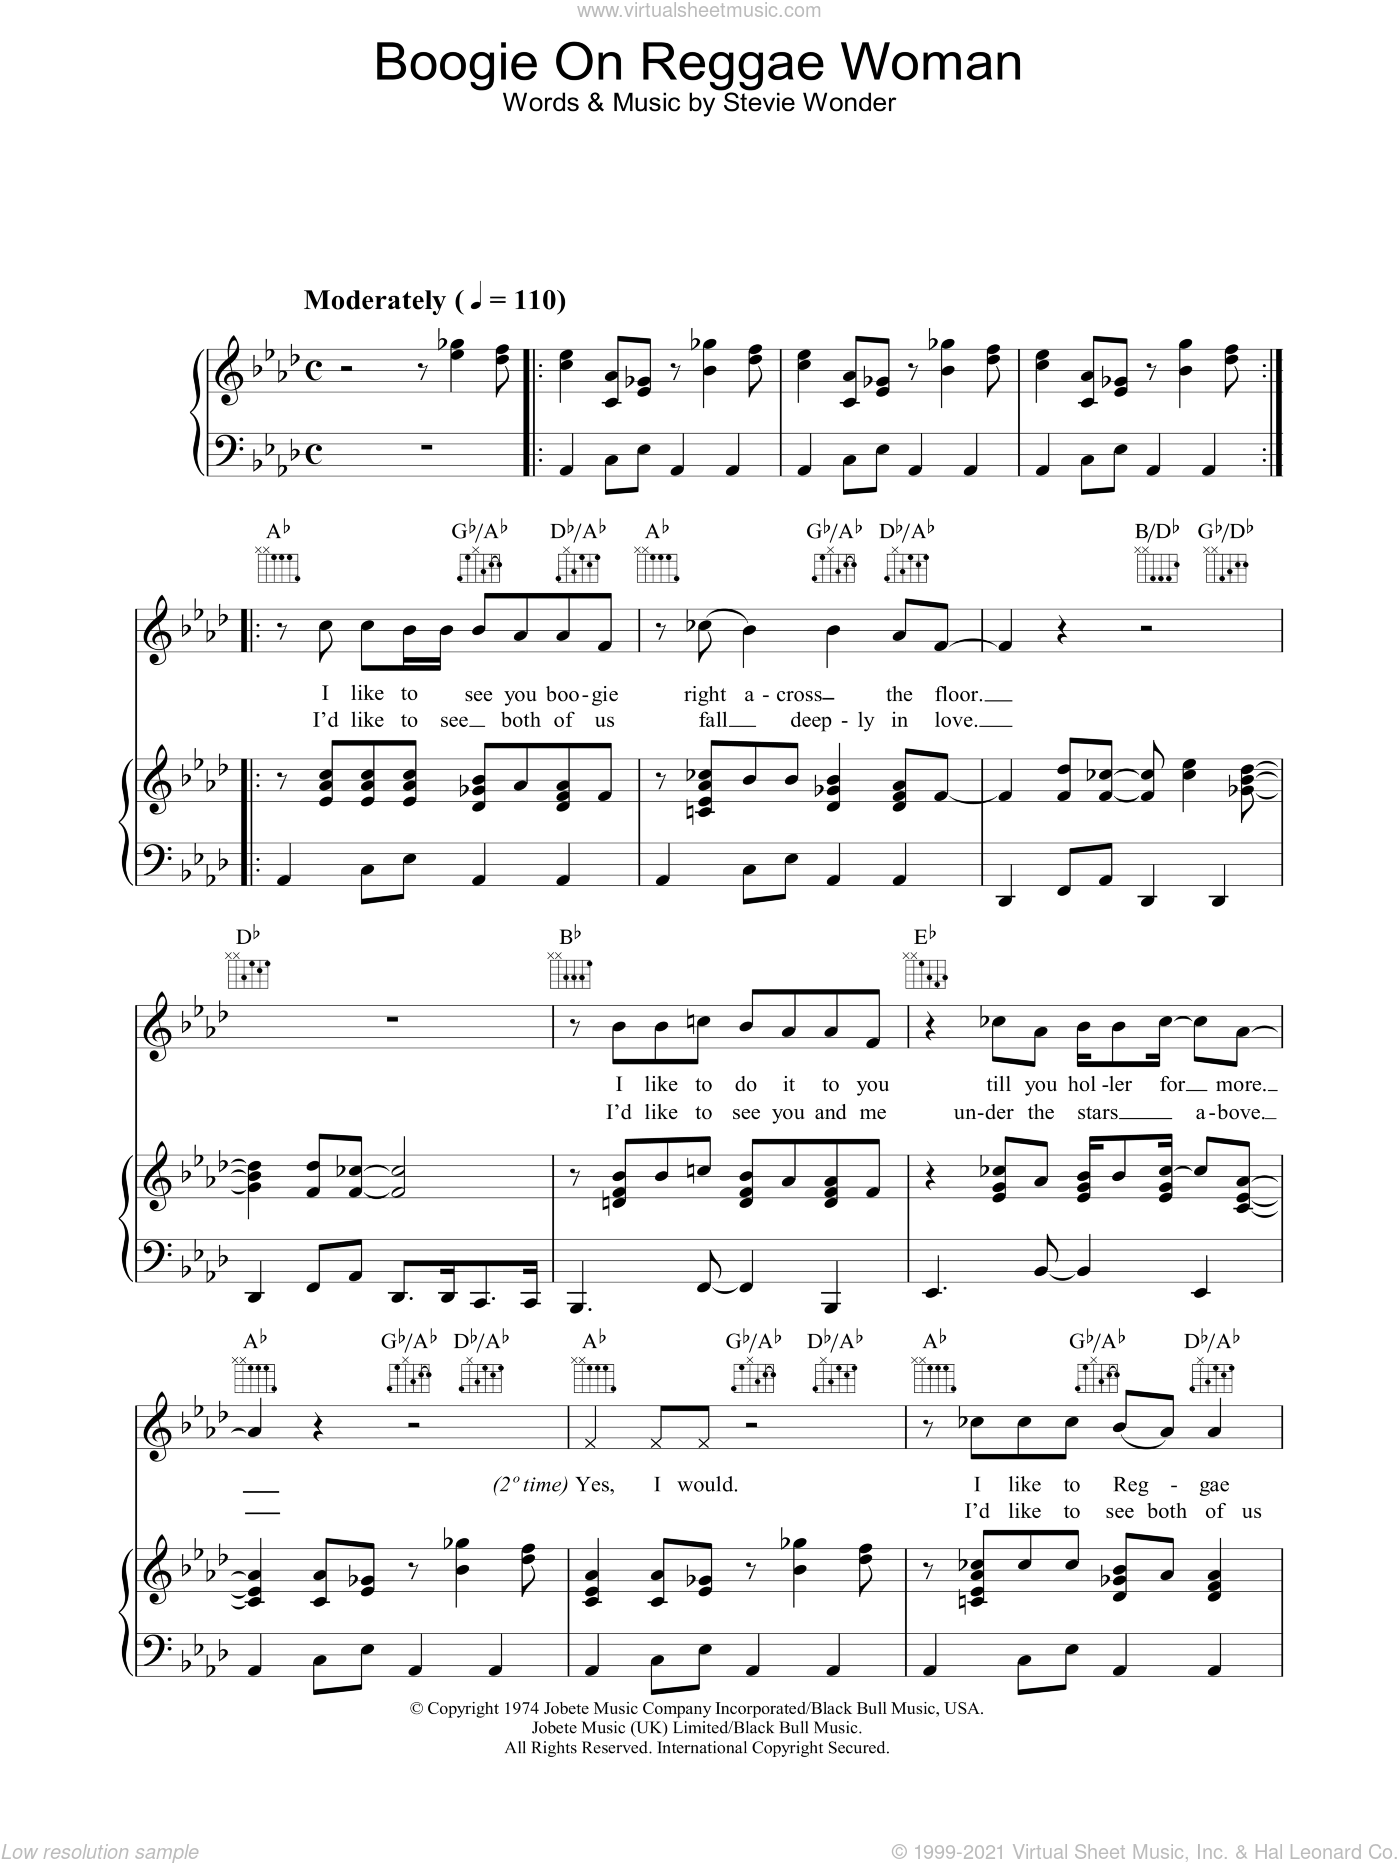 Boogie On Reggae Woman sheet music for voice, piano or guitar by Stevie Wonder. Score Image Preview.